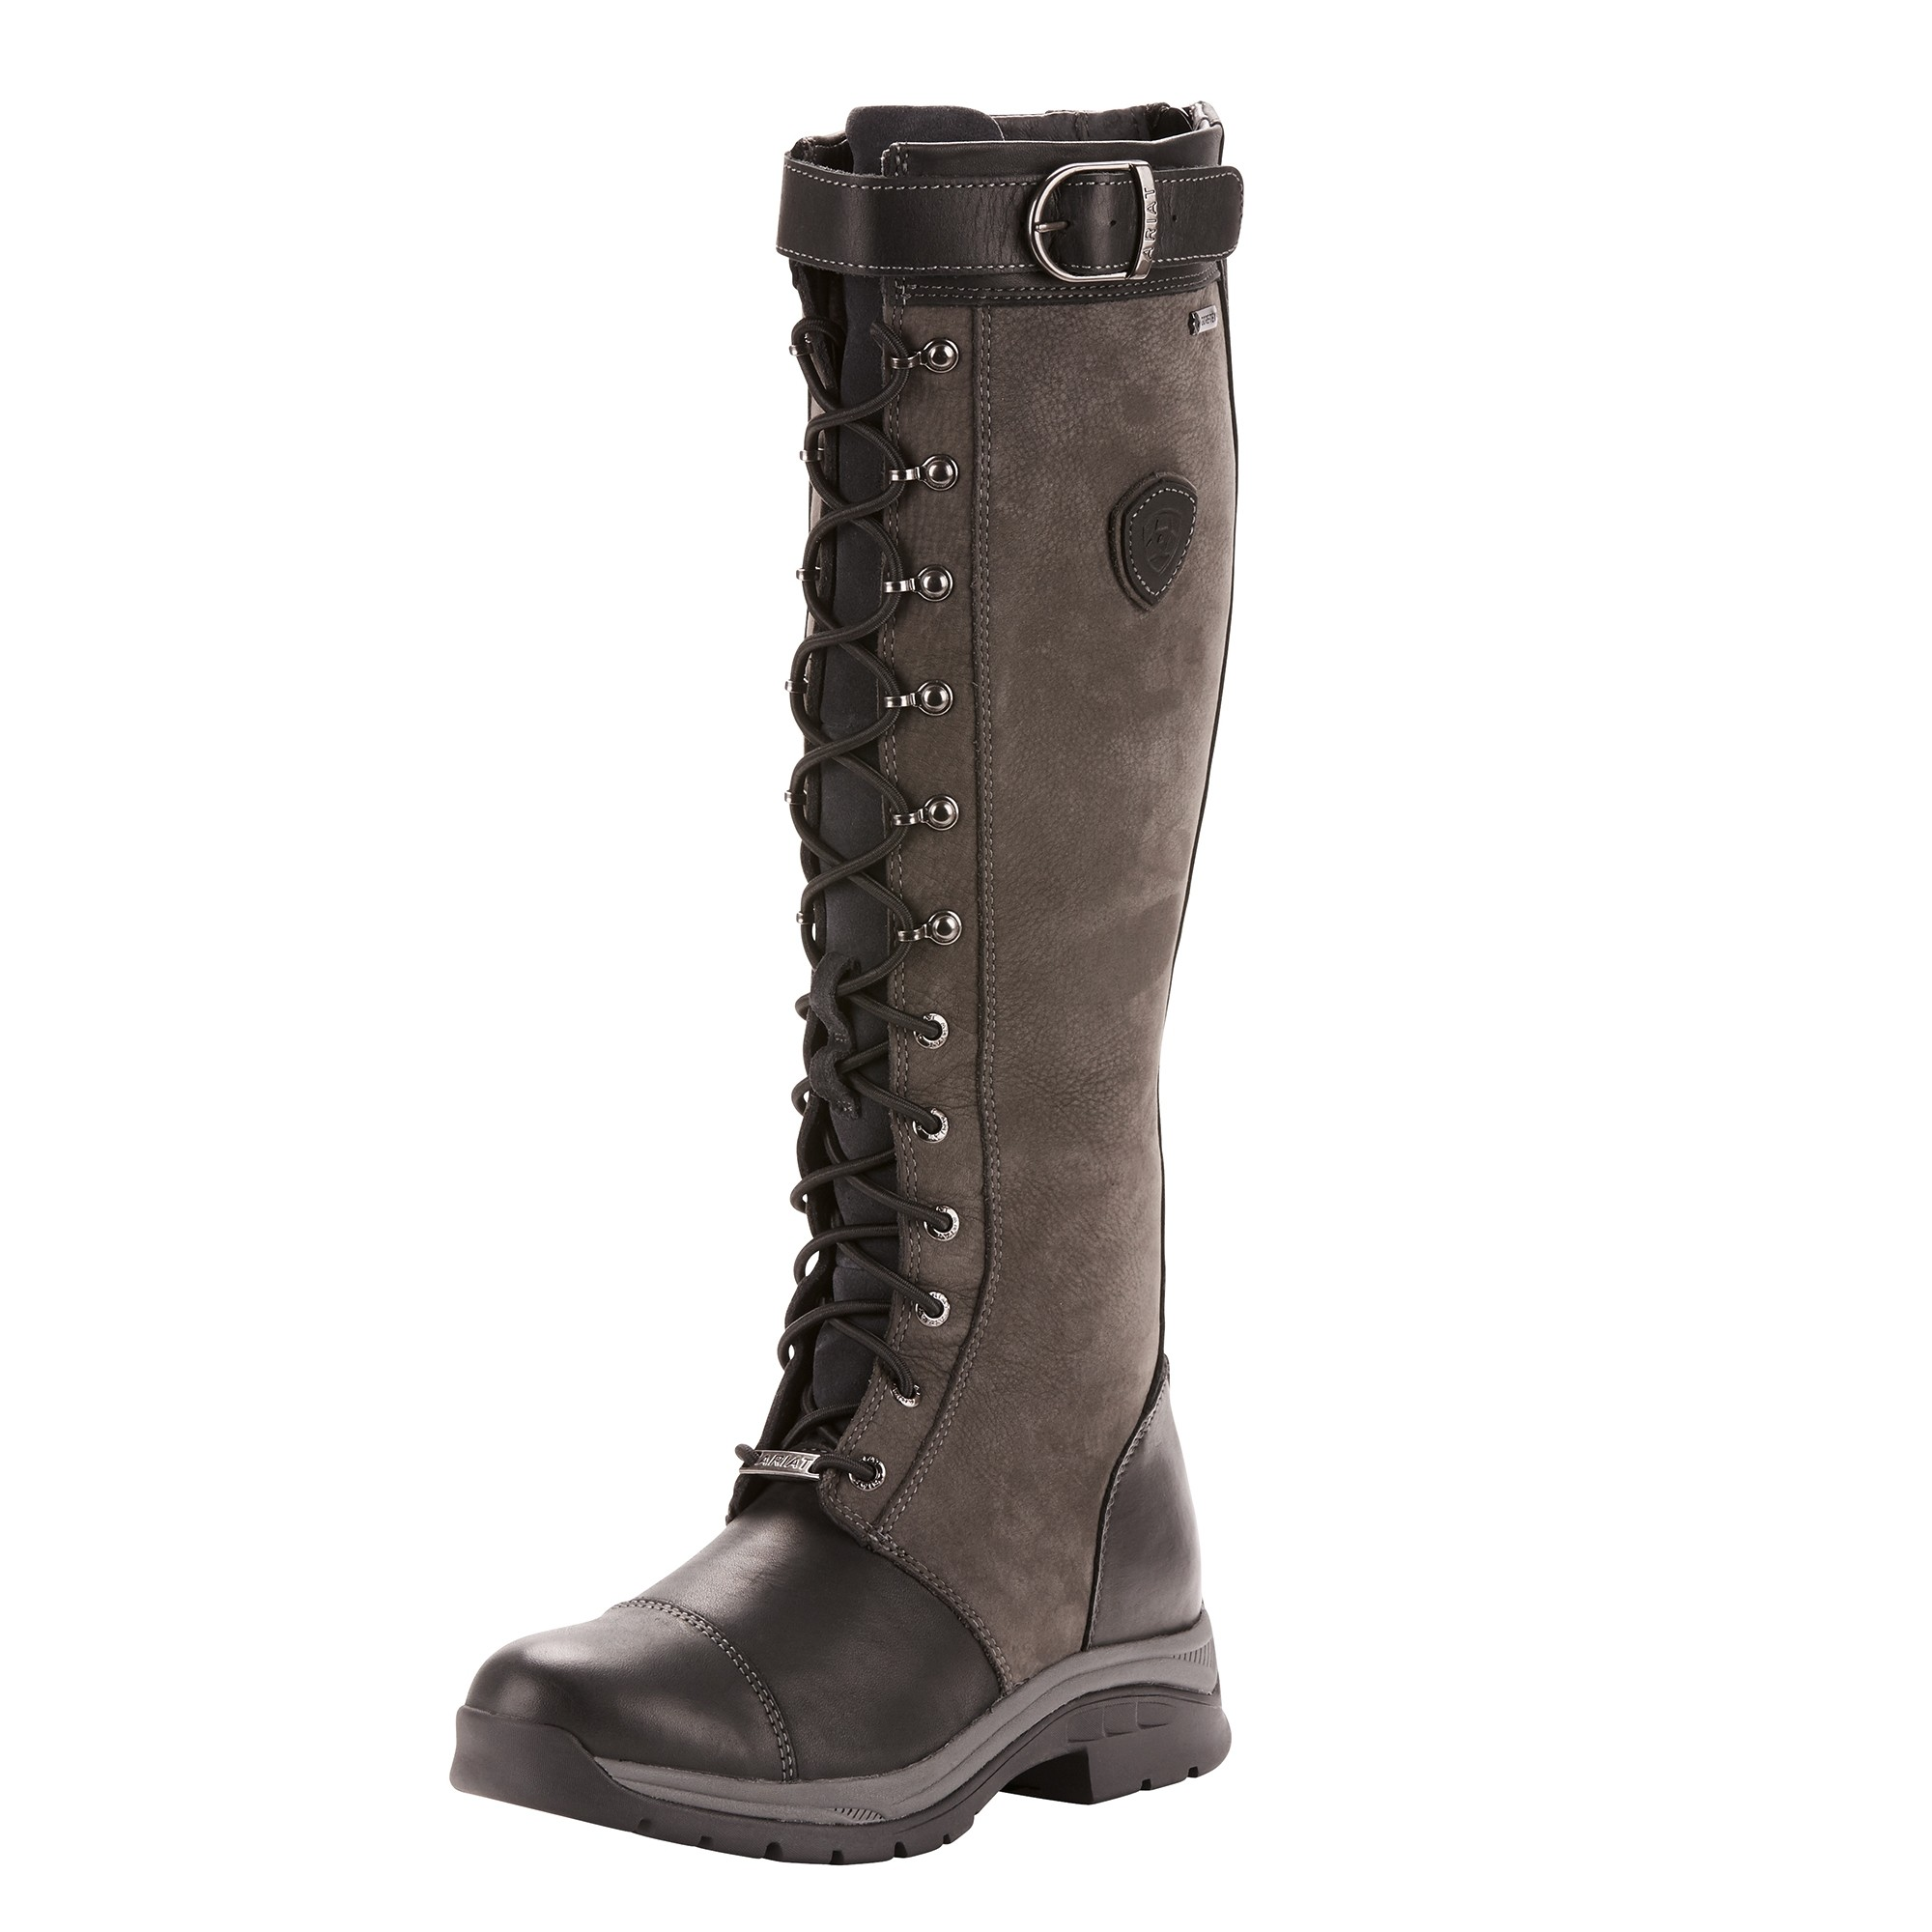 Ariat Womens Berwick GTX Insulated Boot  - Thomas Irving's equestrian and accessories store  Ariat Womens Berwick GTX Insulated Boot